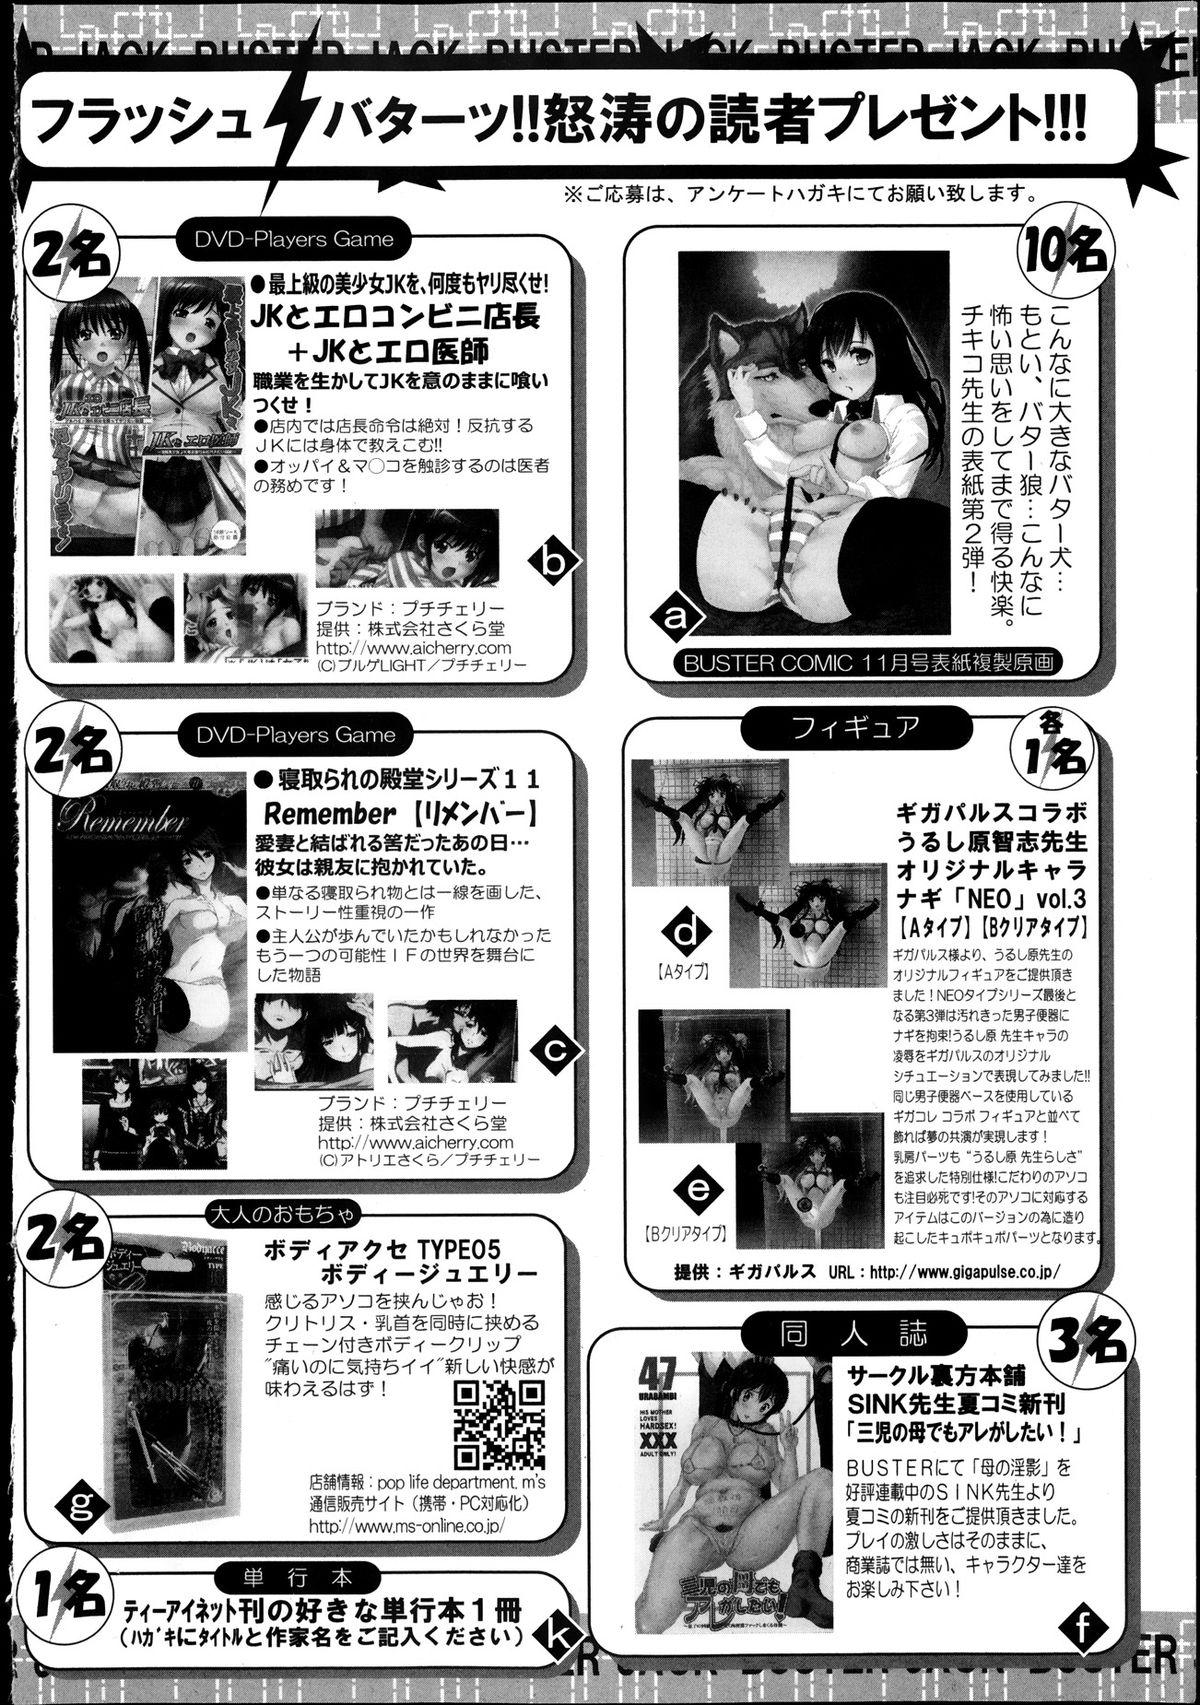 BUSTER COMIC 2013-11 480